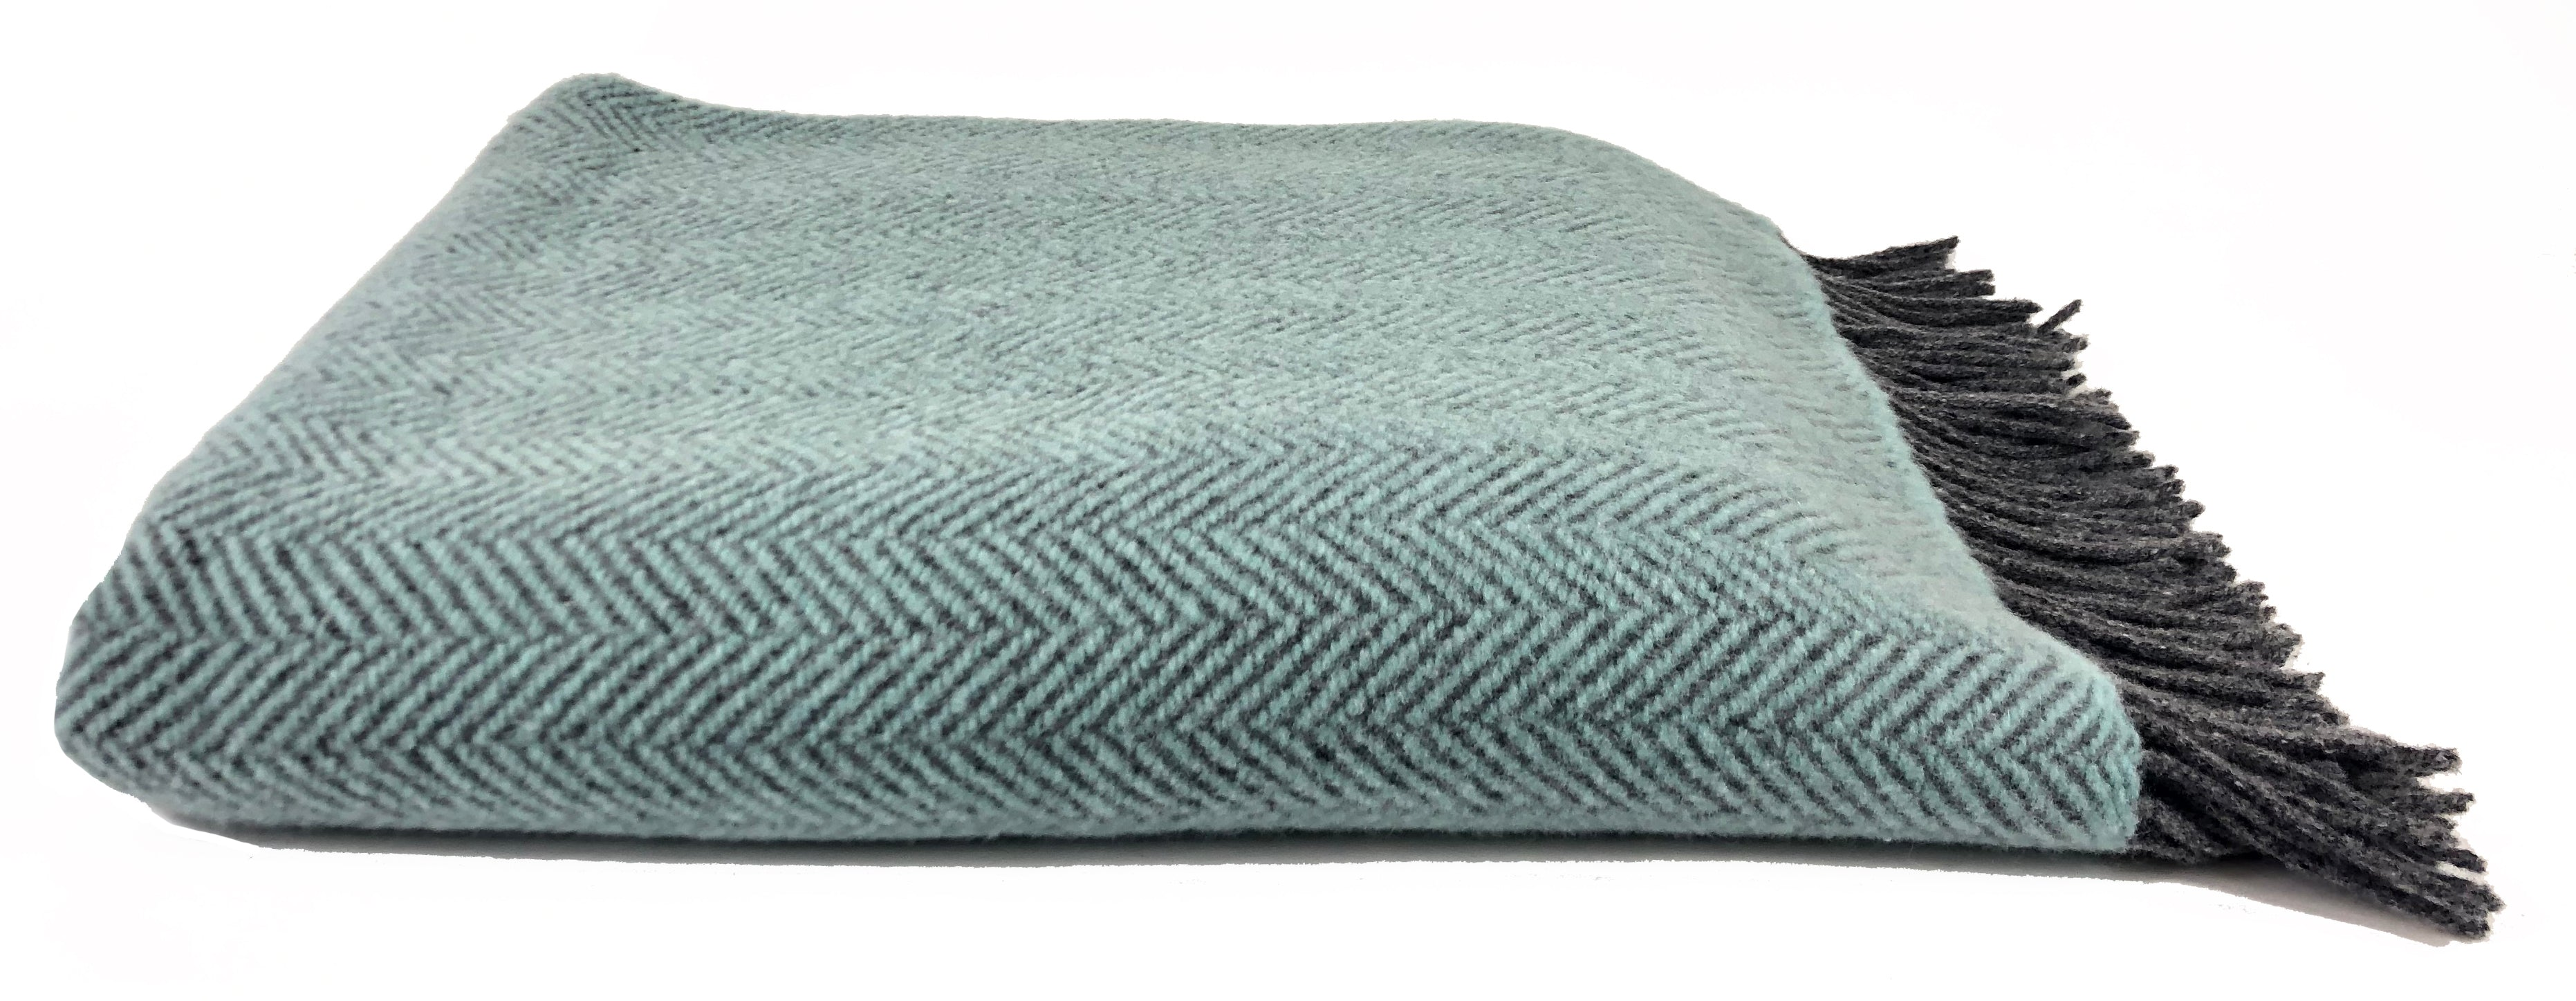 Merino & Cashmere Throw | Duck Egg Herringbone